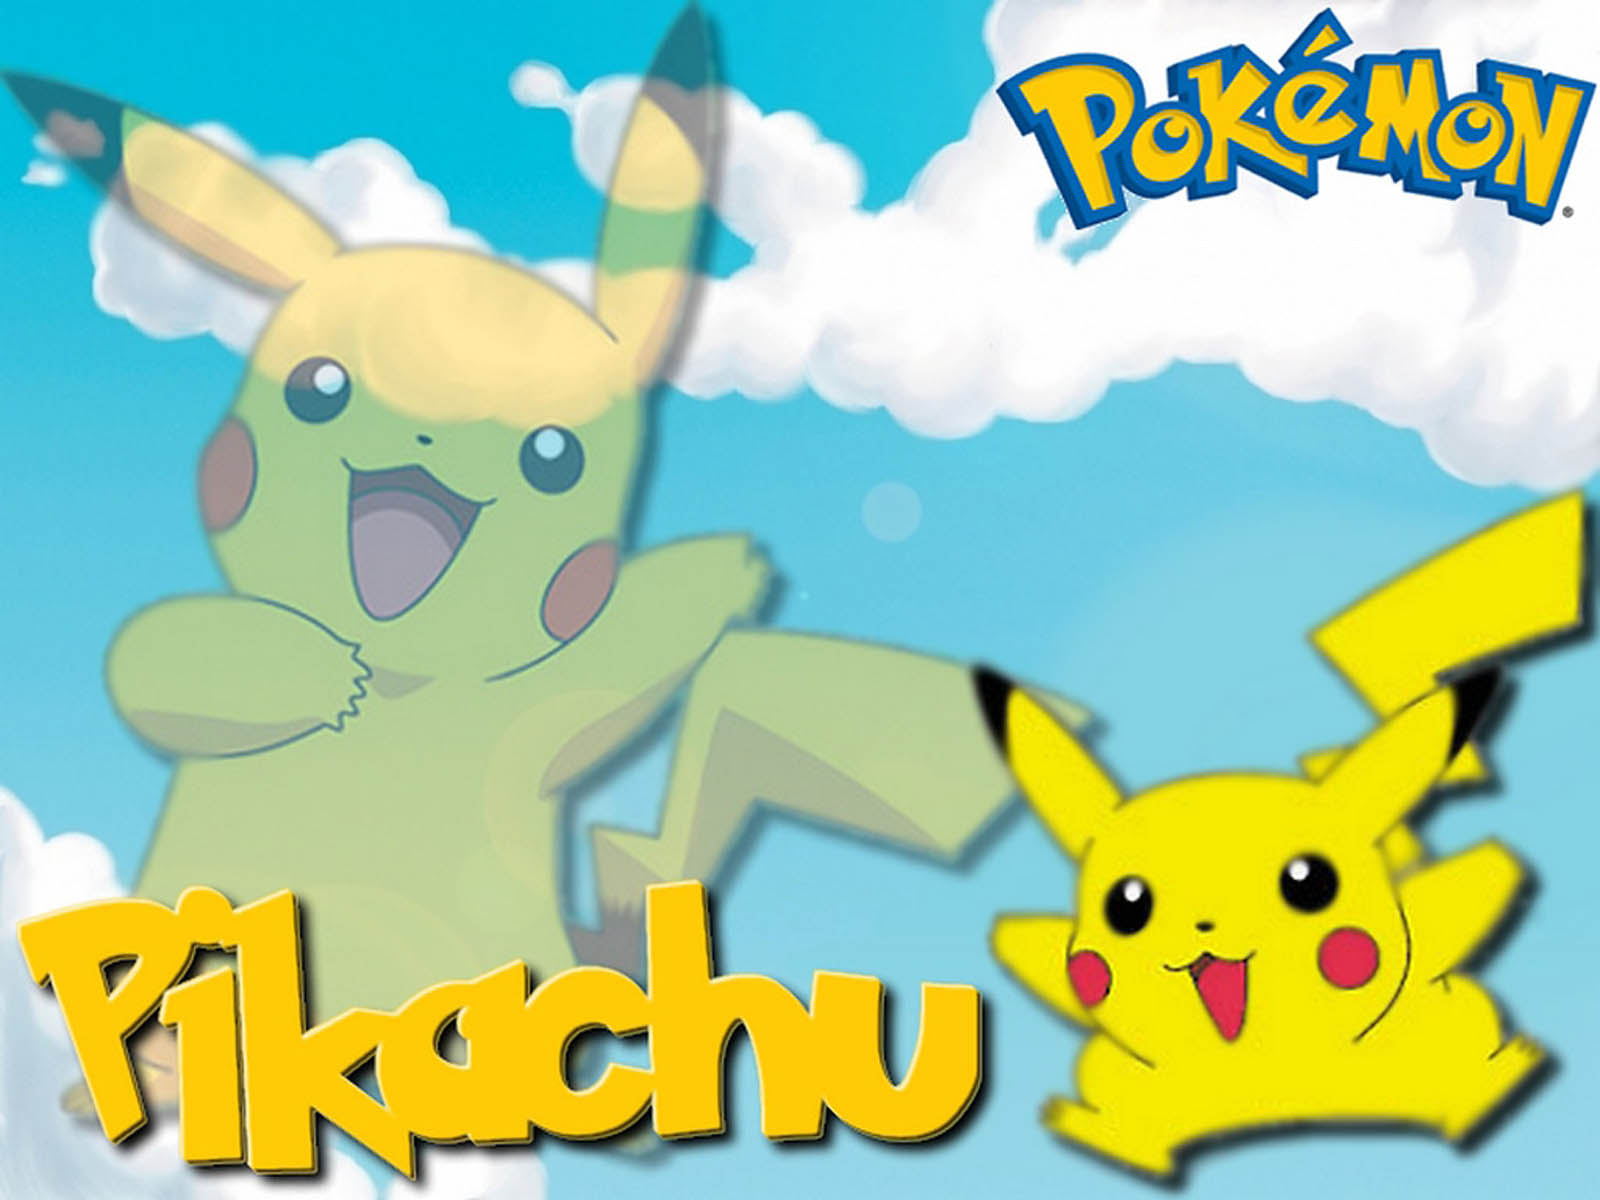 Pikachu Pokemon picture for wallpaper 1600x1200